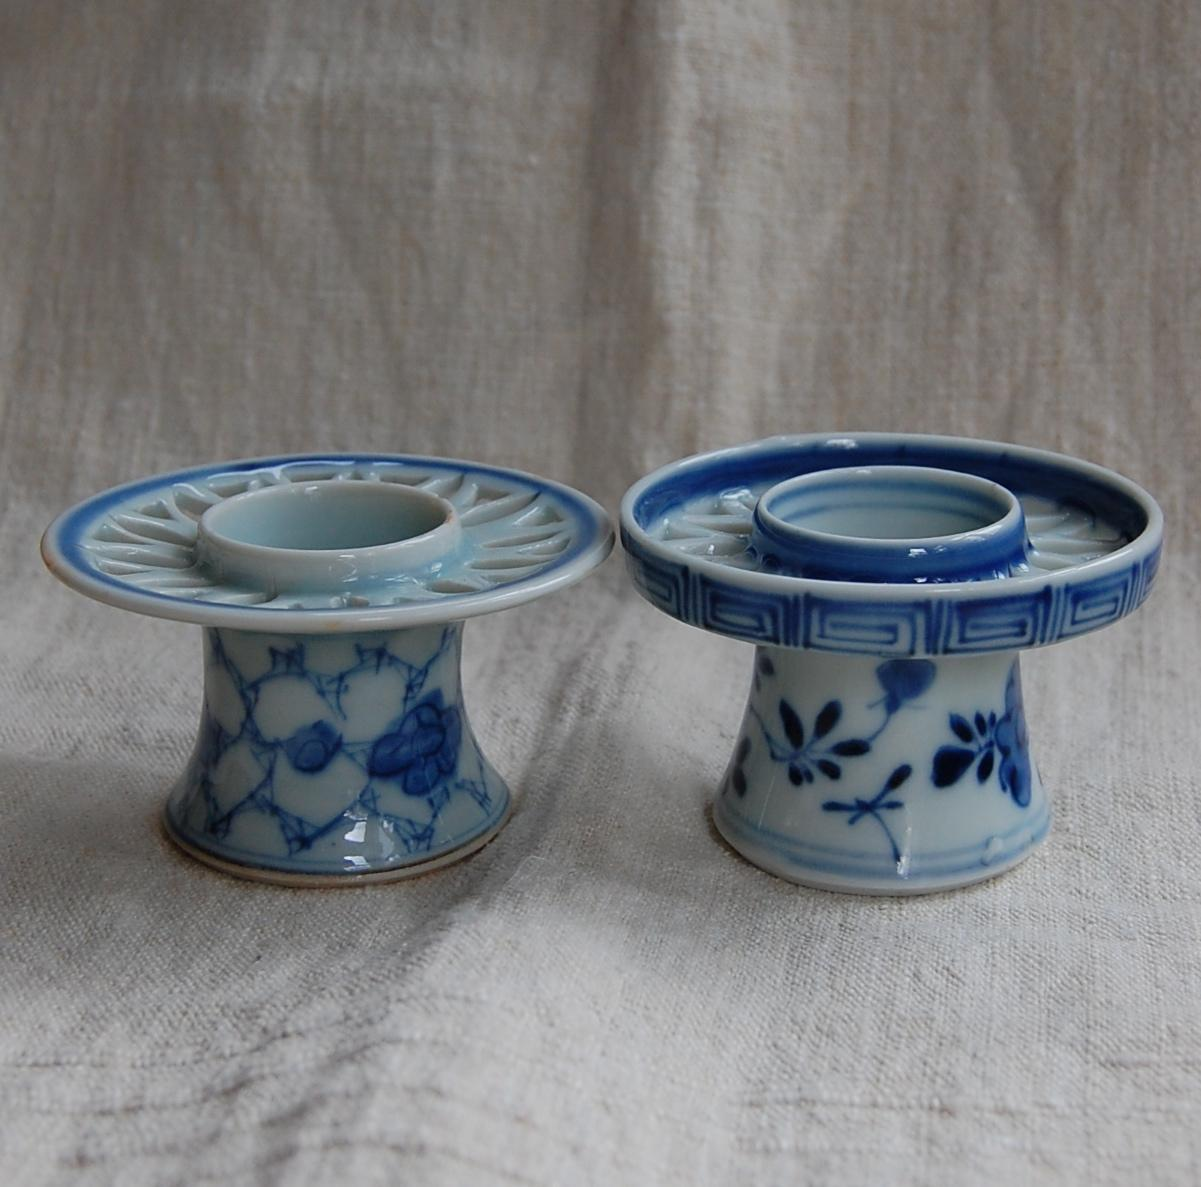 Chinese Export Porcelain Blue And White Candle Holders From Starrhillantiques On Ruby Lane